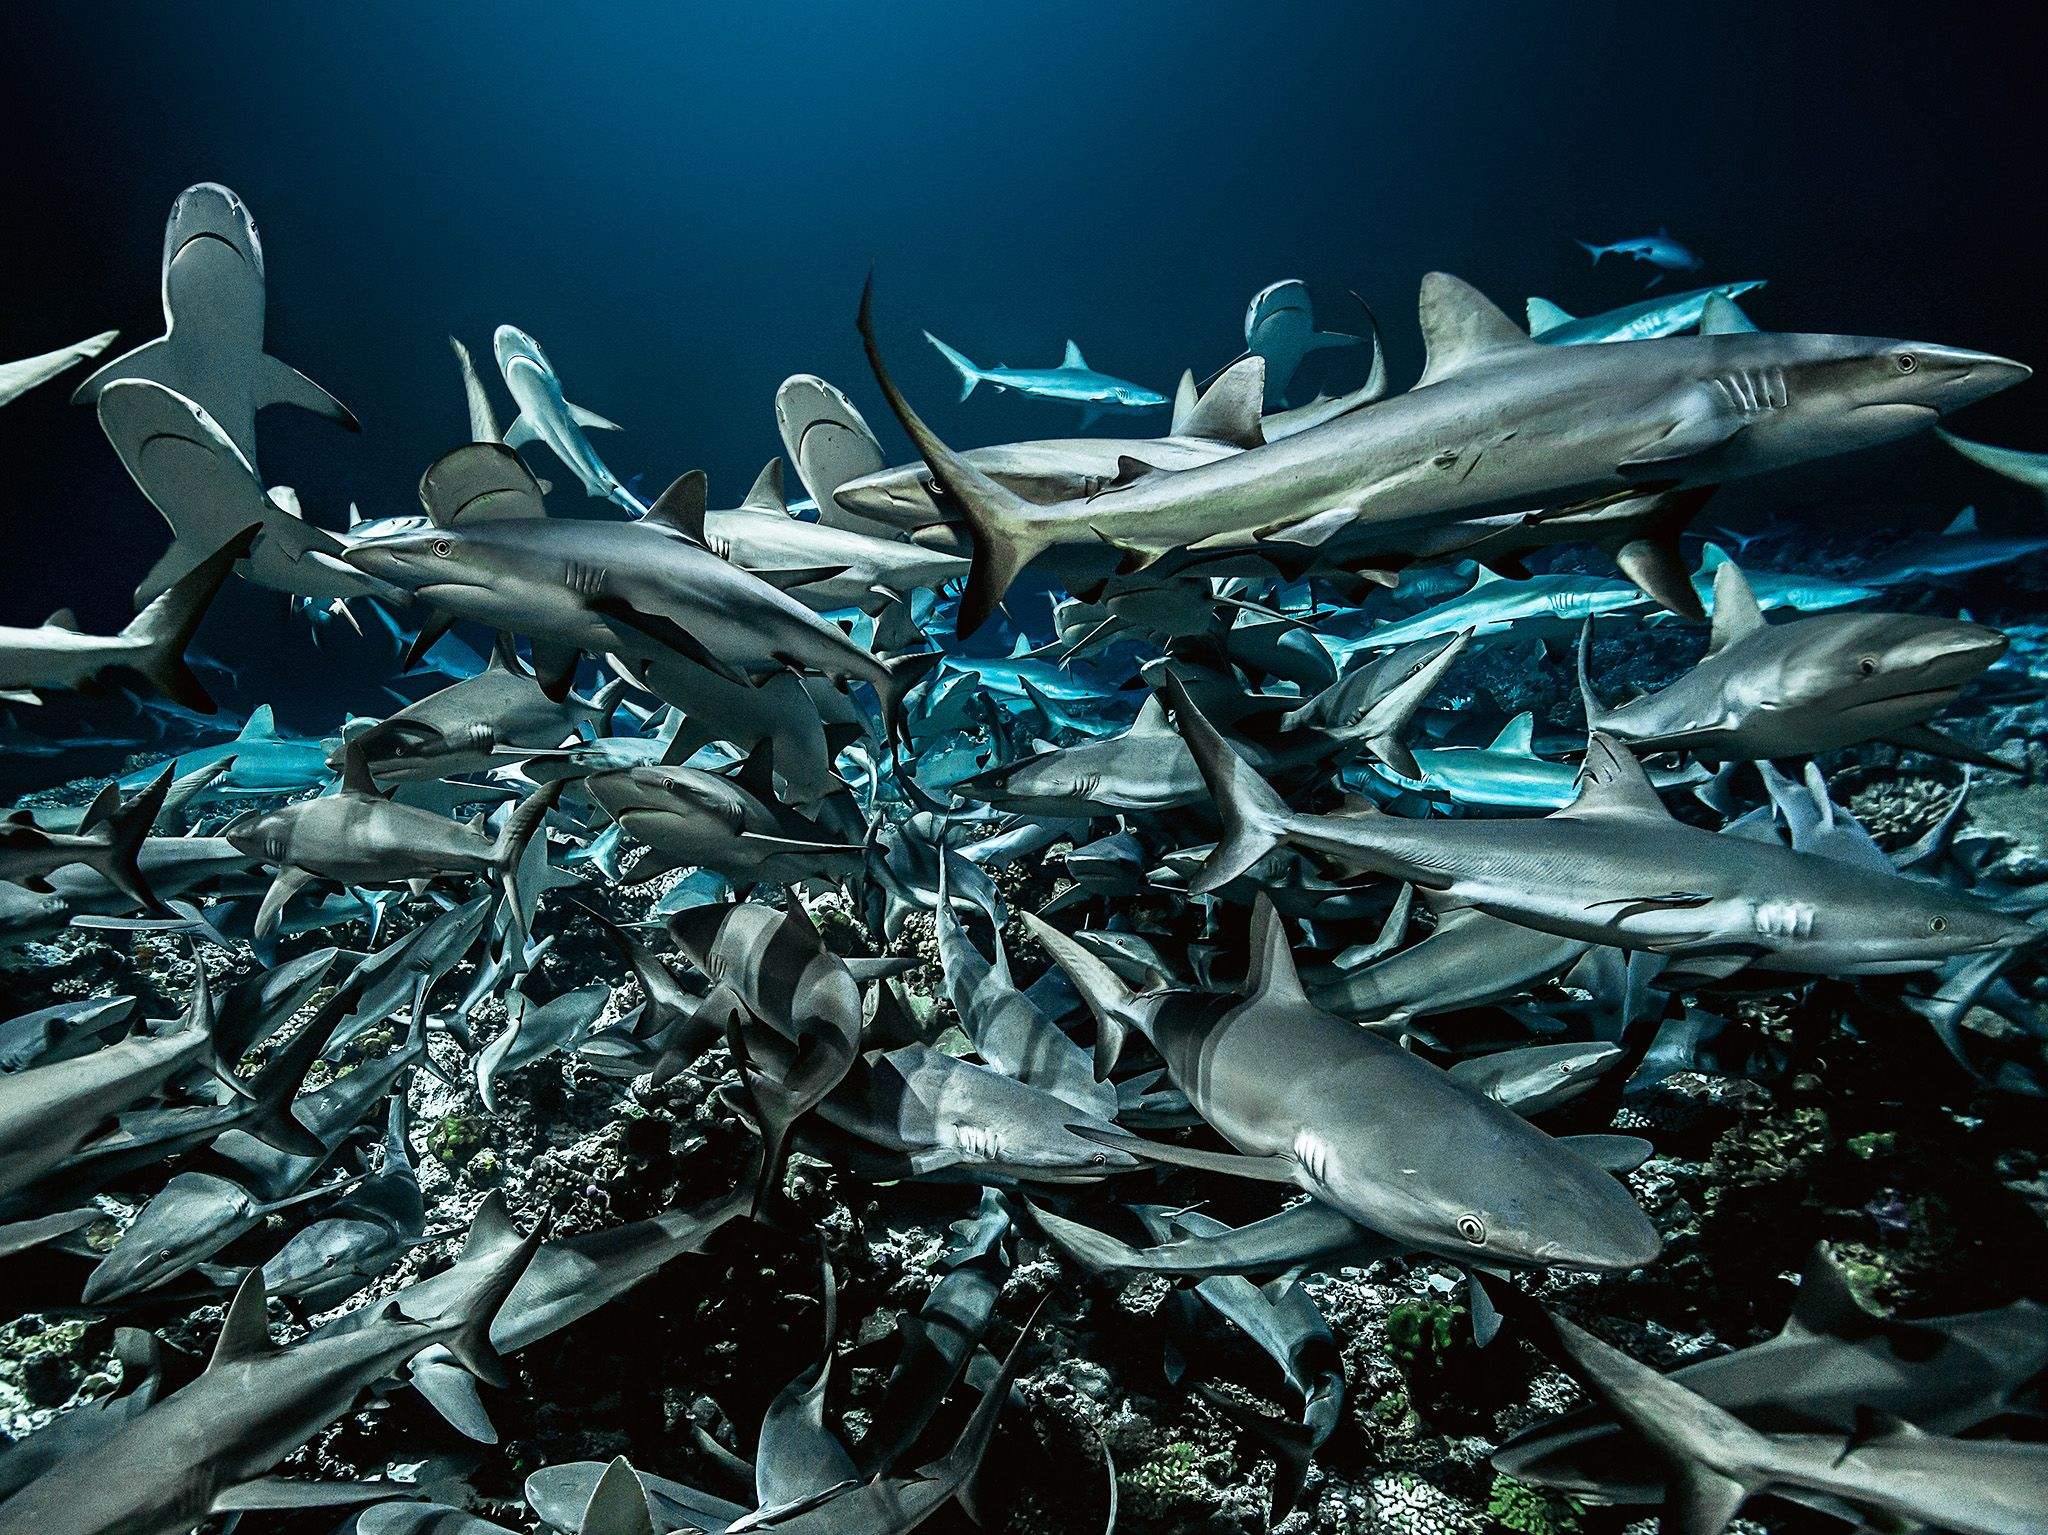 Fakarava:  700 sharks were identified in the south pass of Fakarava. This image is from 700 Sharks. [Foto del giorno - luglio 2018]